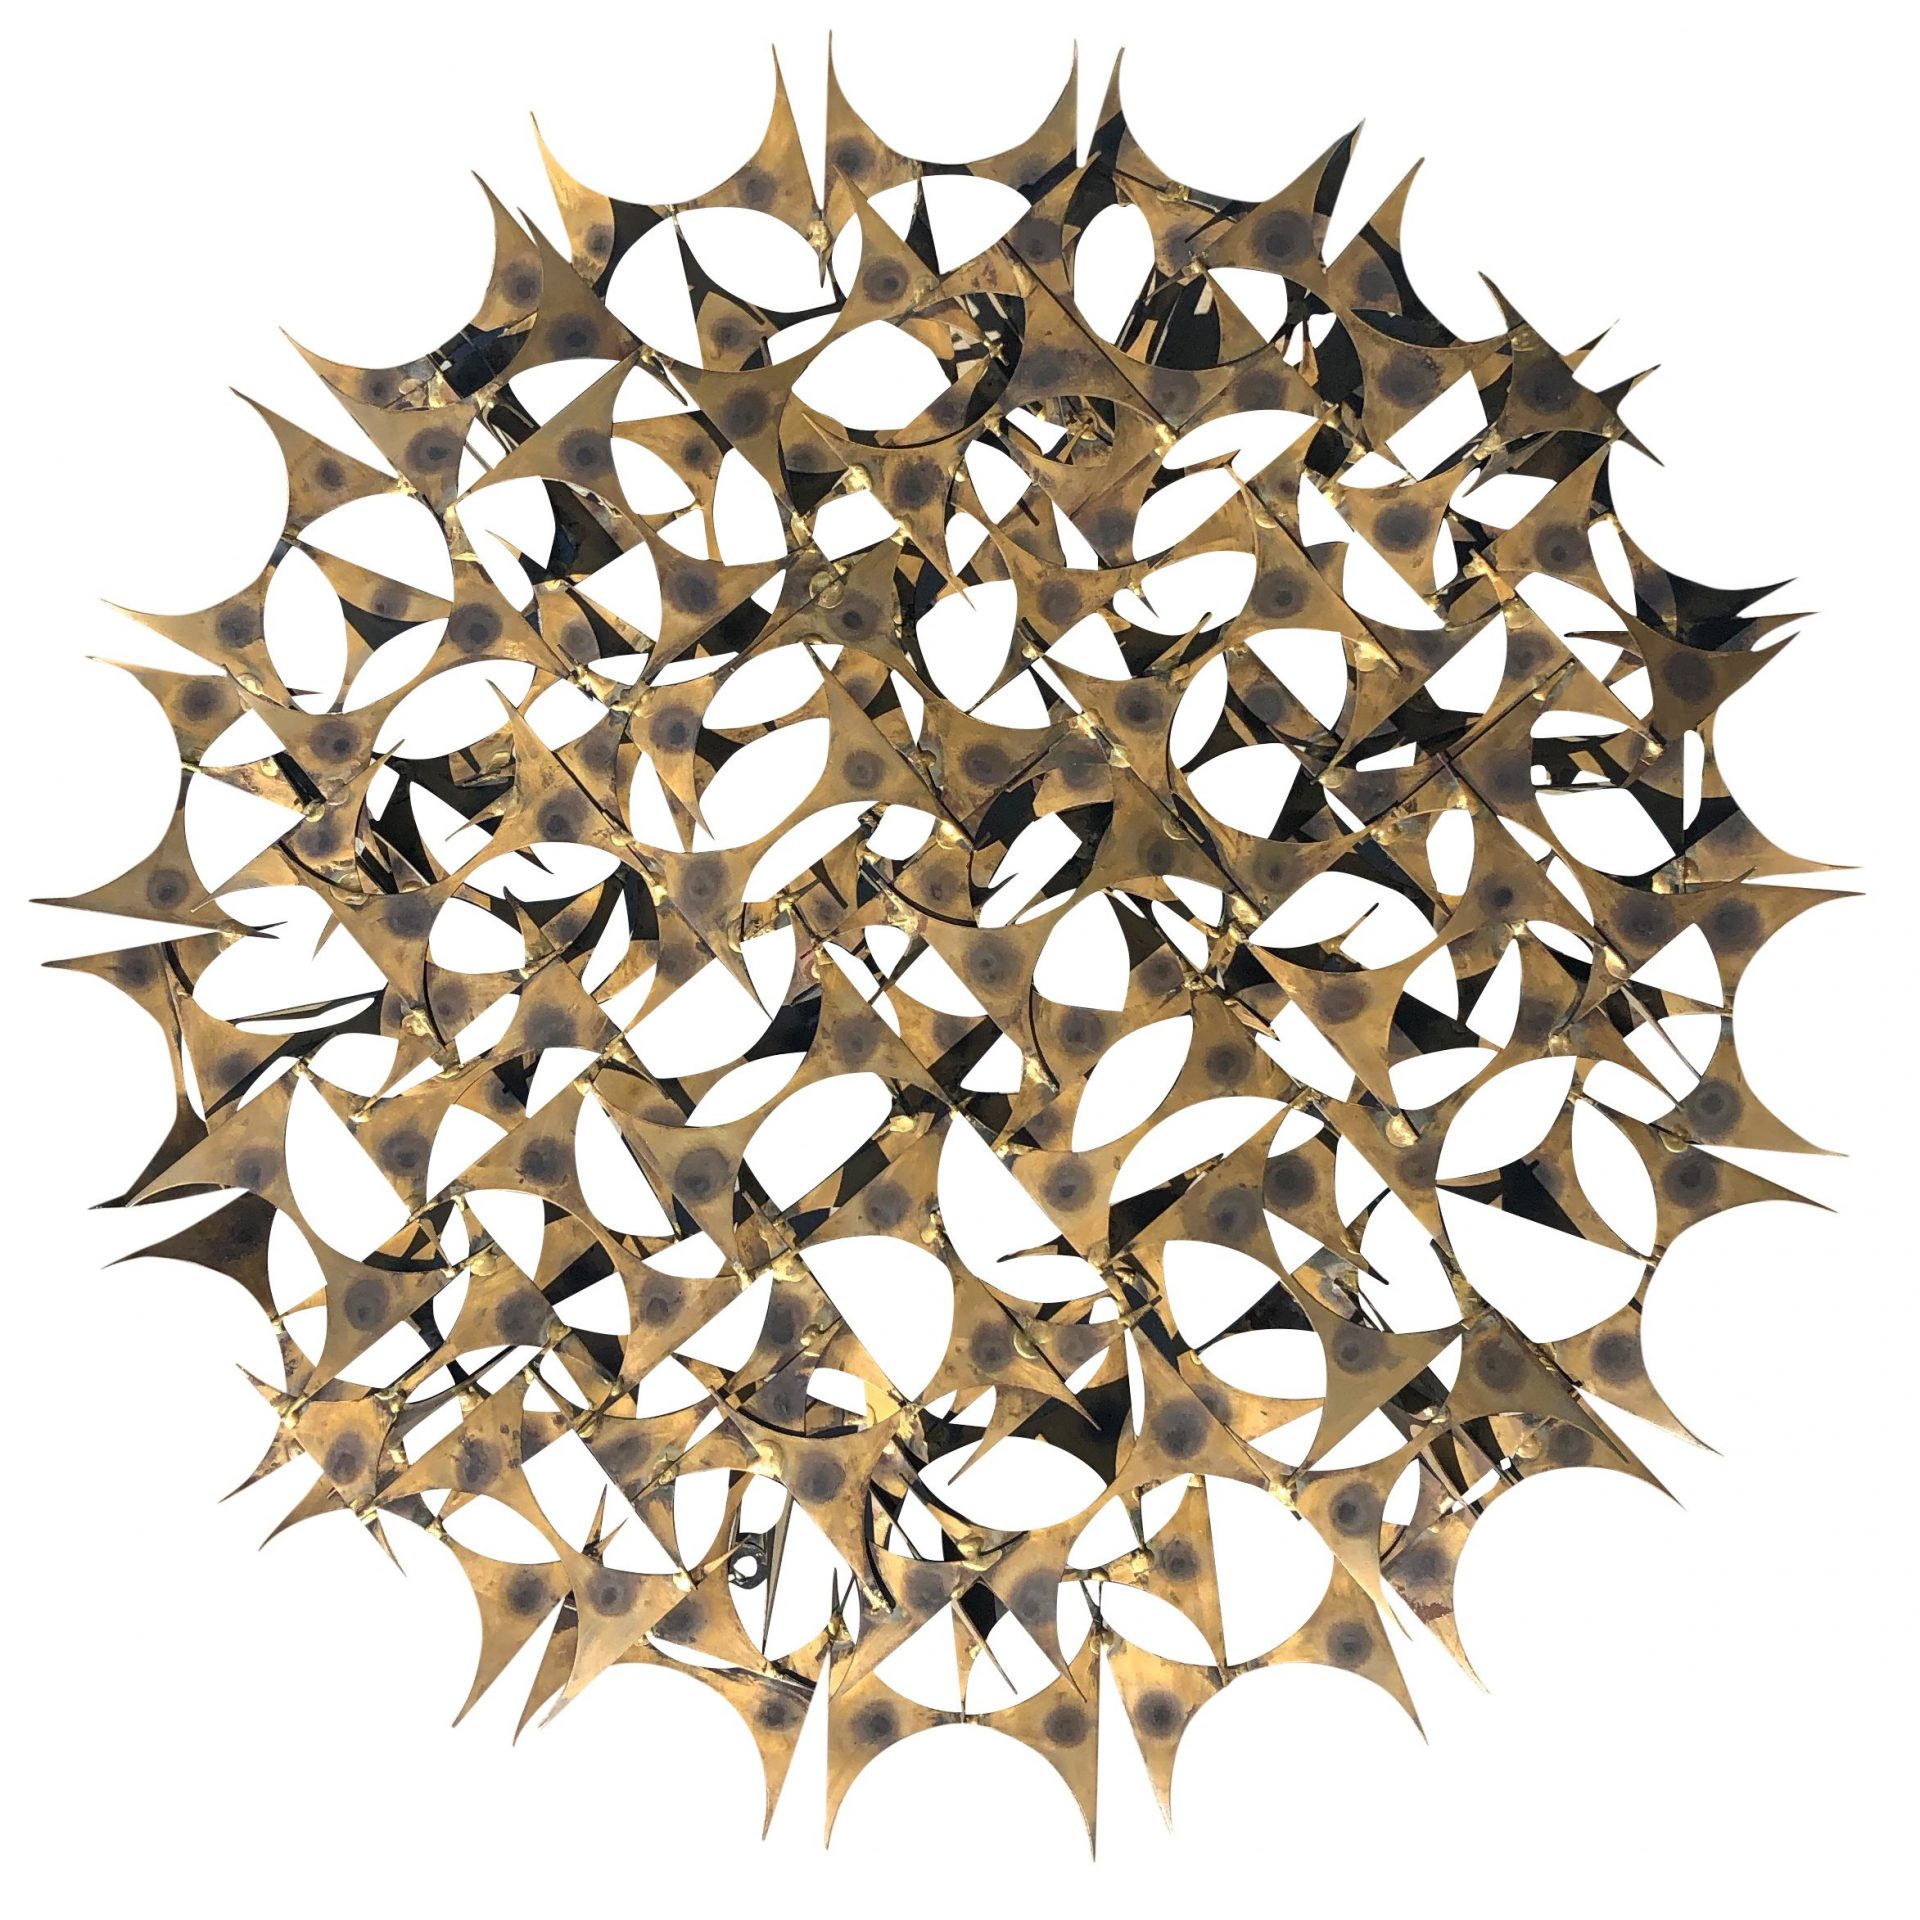 20th Century American Metal – Brass Wall Sculpture by Marc Weinstein